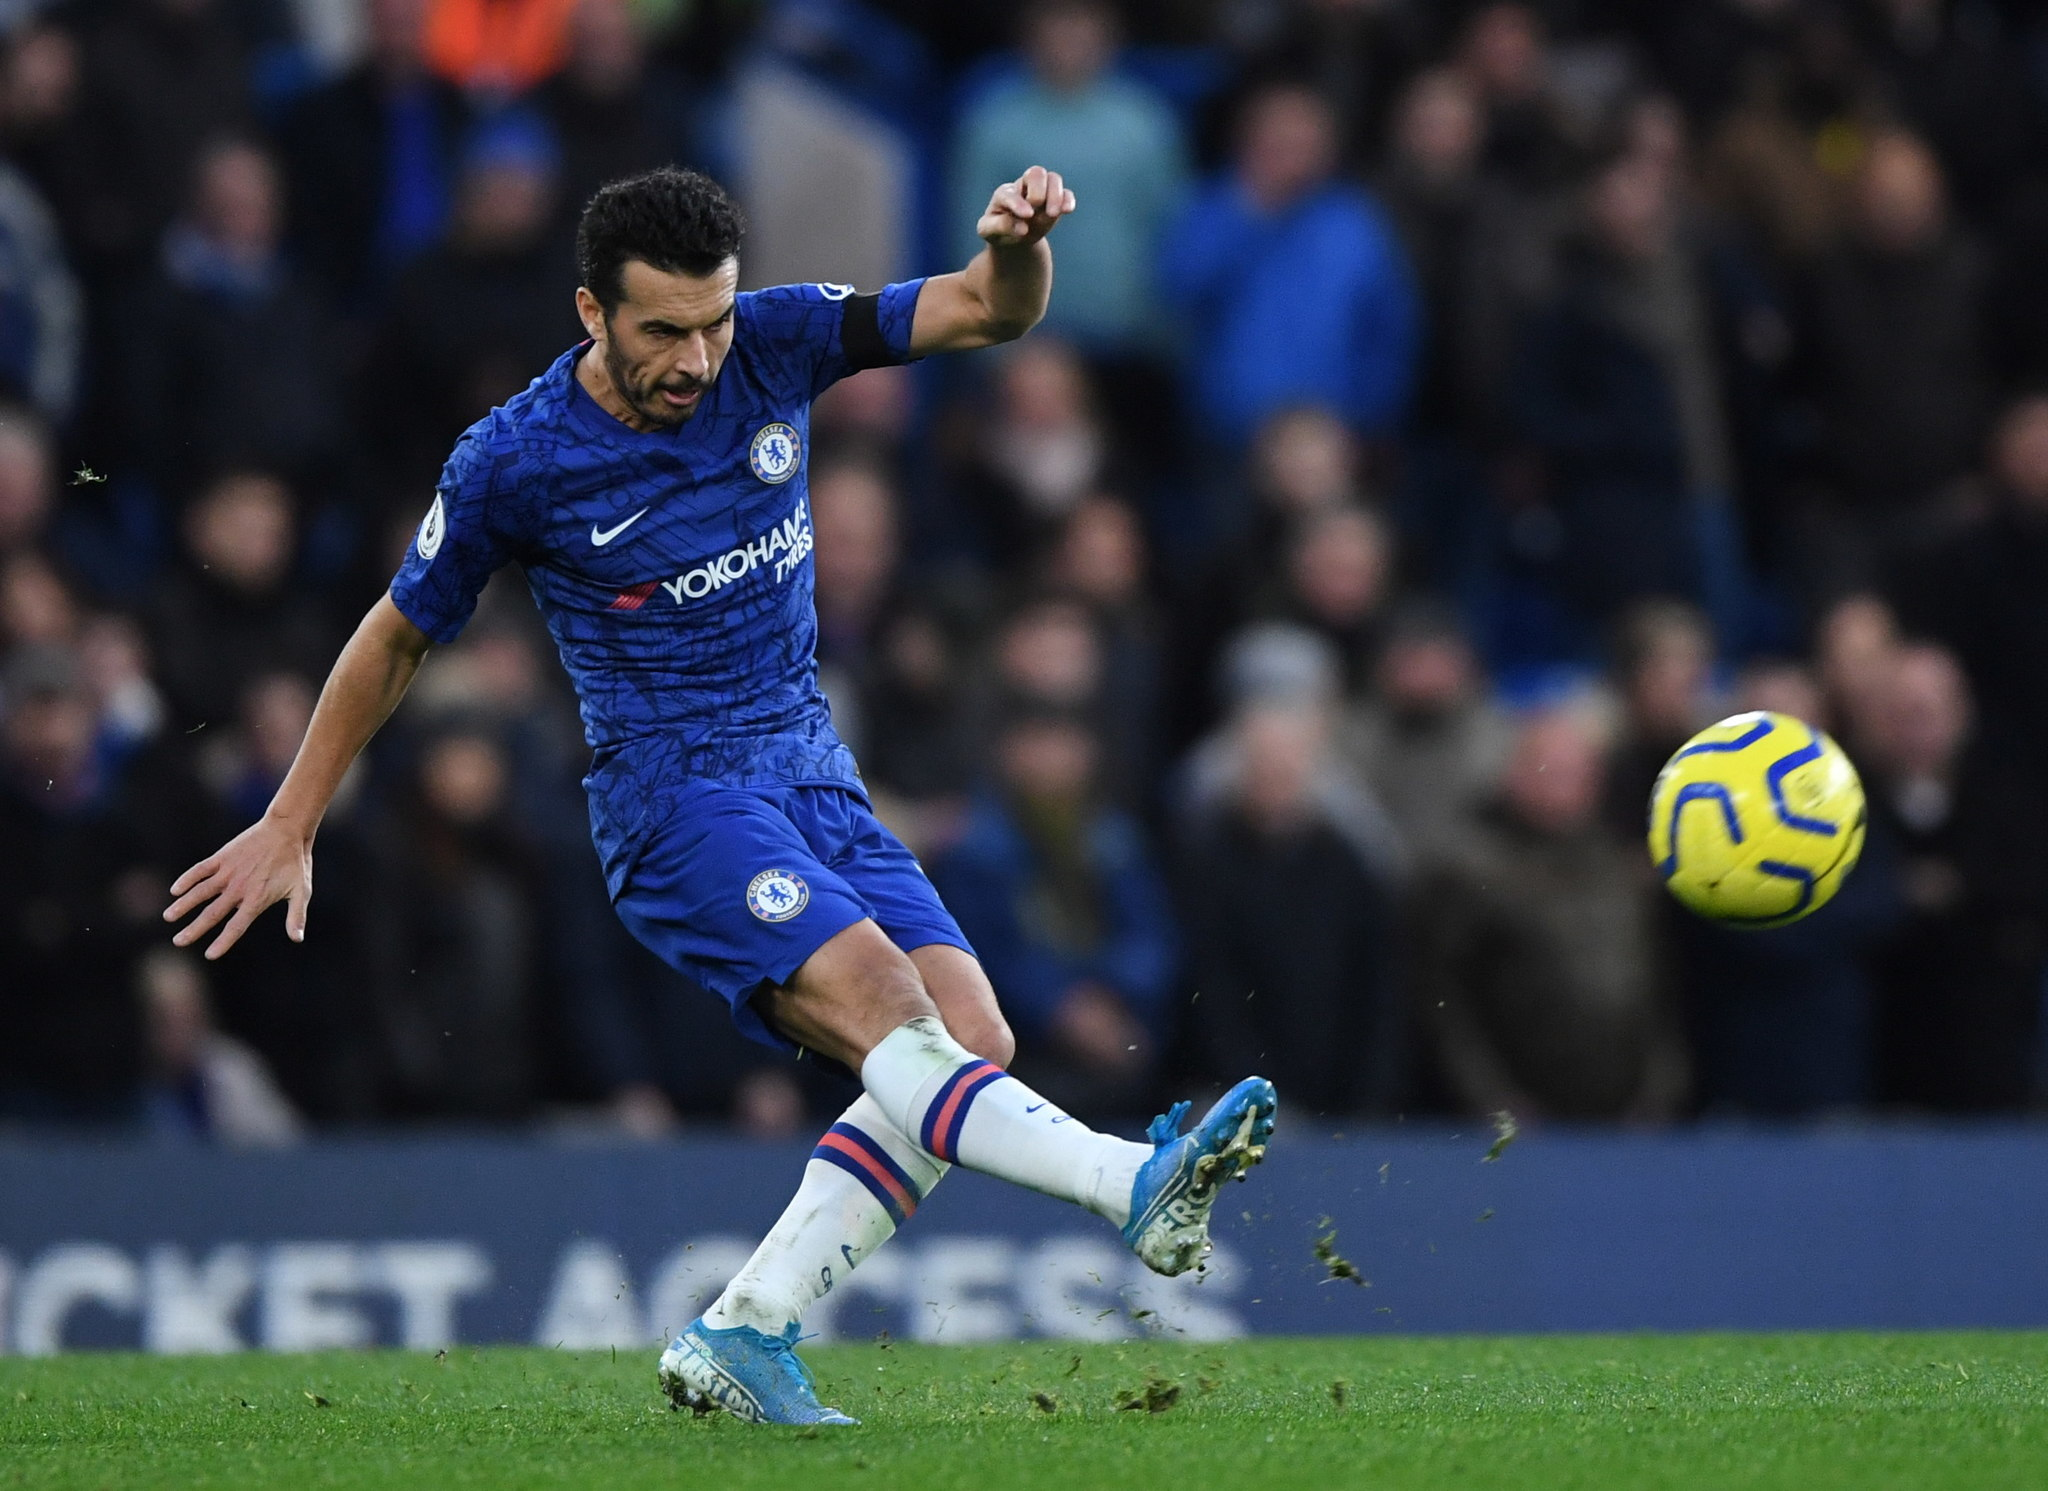 London (United Kingdom), 30/11/2019.- <HIT>Chelsea</HIT>s <HIT>Pedro</HIT> aims to score during the English Premier League soccer match between <HIT>Chelsea</HIT> FC and West Ham United at Stamford Bridge in London, Britain, 30 November 2019. (Reino Unido, Londres) EFE/EPA/FACUNDO ARRIZABALAGA EDITORIAL USE ONLY. No use with unauthorized audio, video, data, fixture lists, club/league logos or live services. Online in-match use limited to 120 images, no video emulation. No use in betting, games or single club/league/player publications